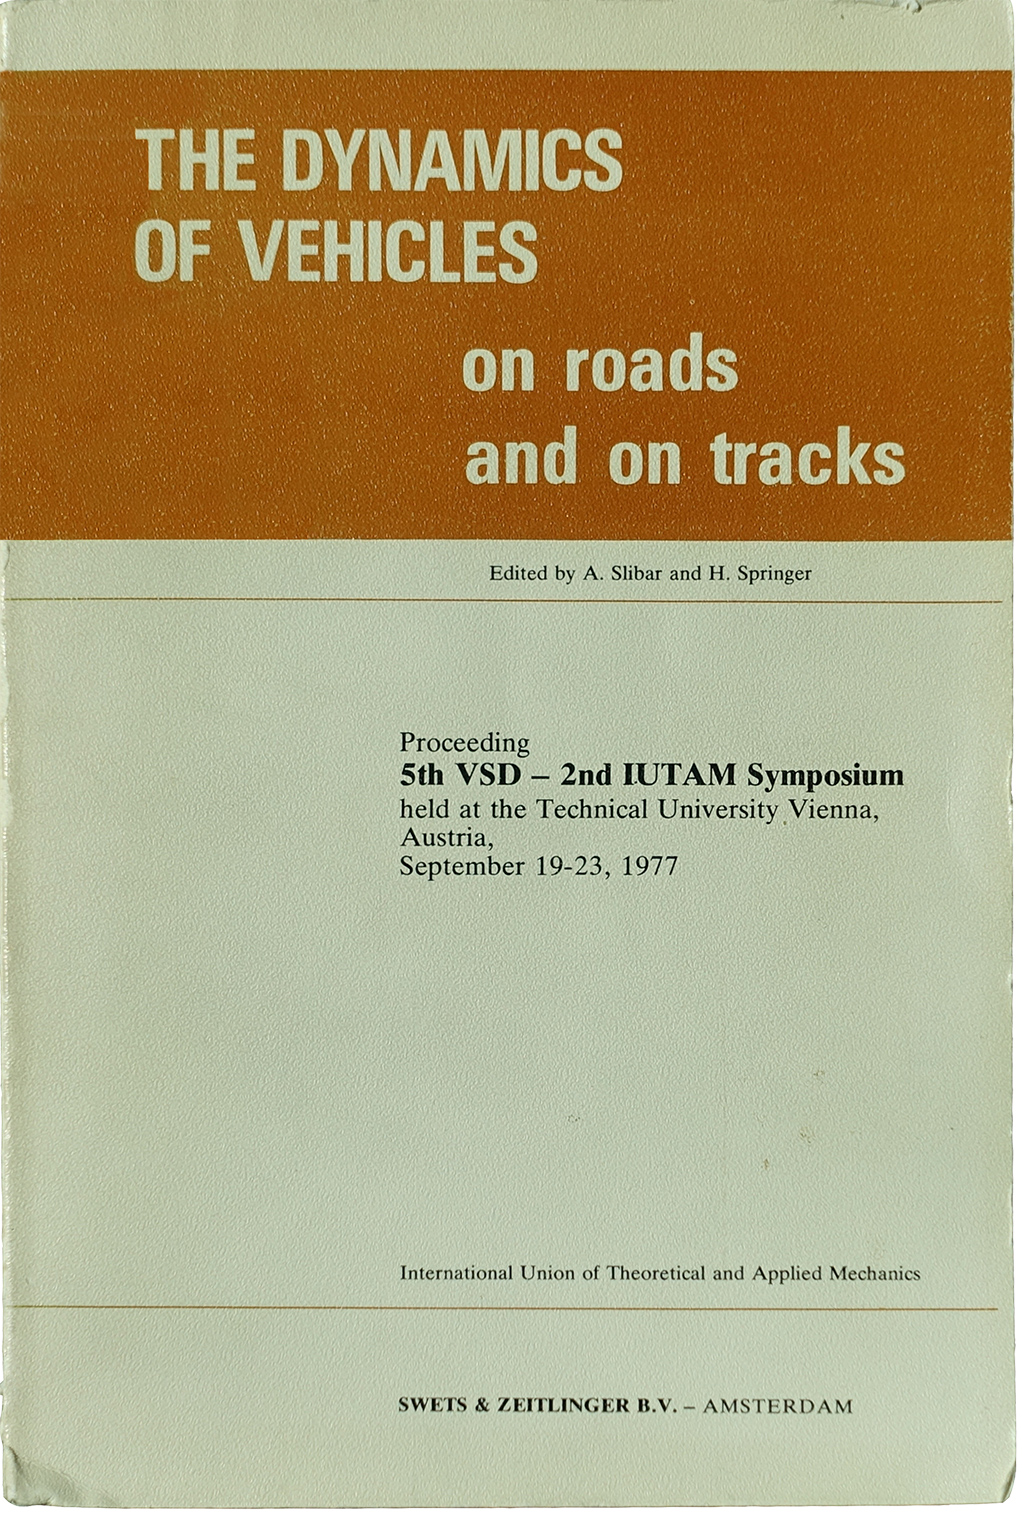 Cover of 1977 IAVSD proceedings